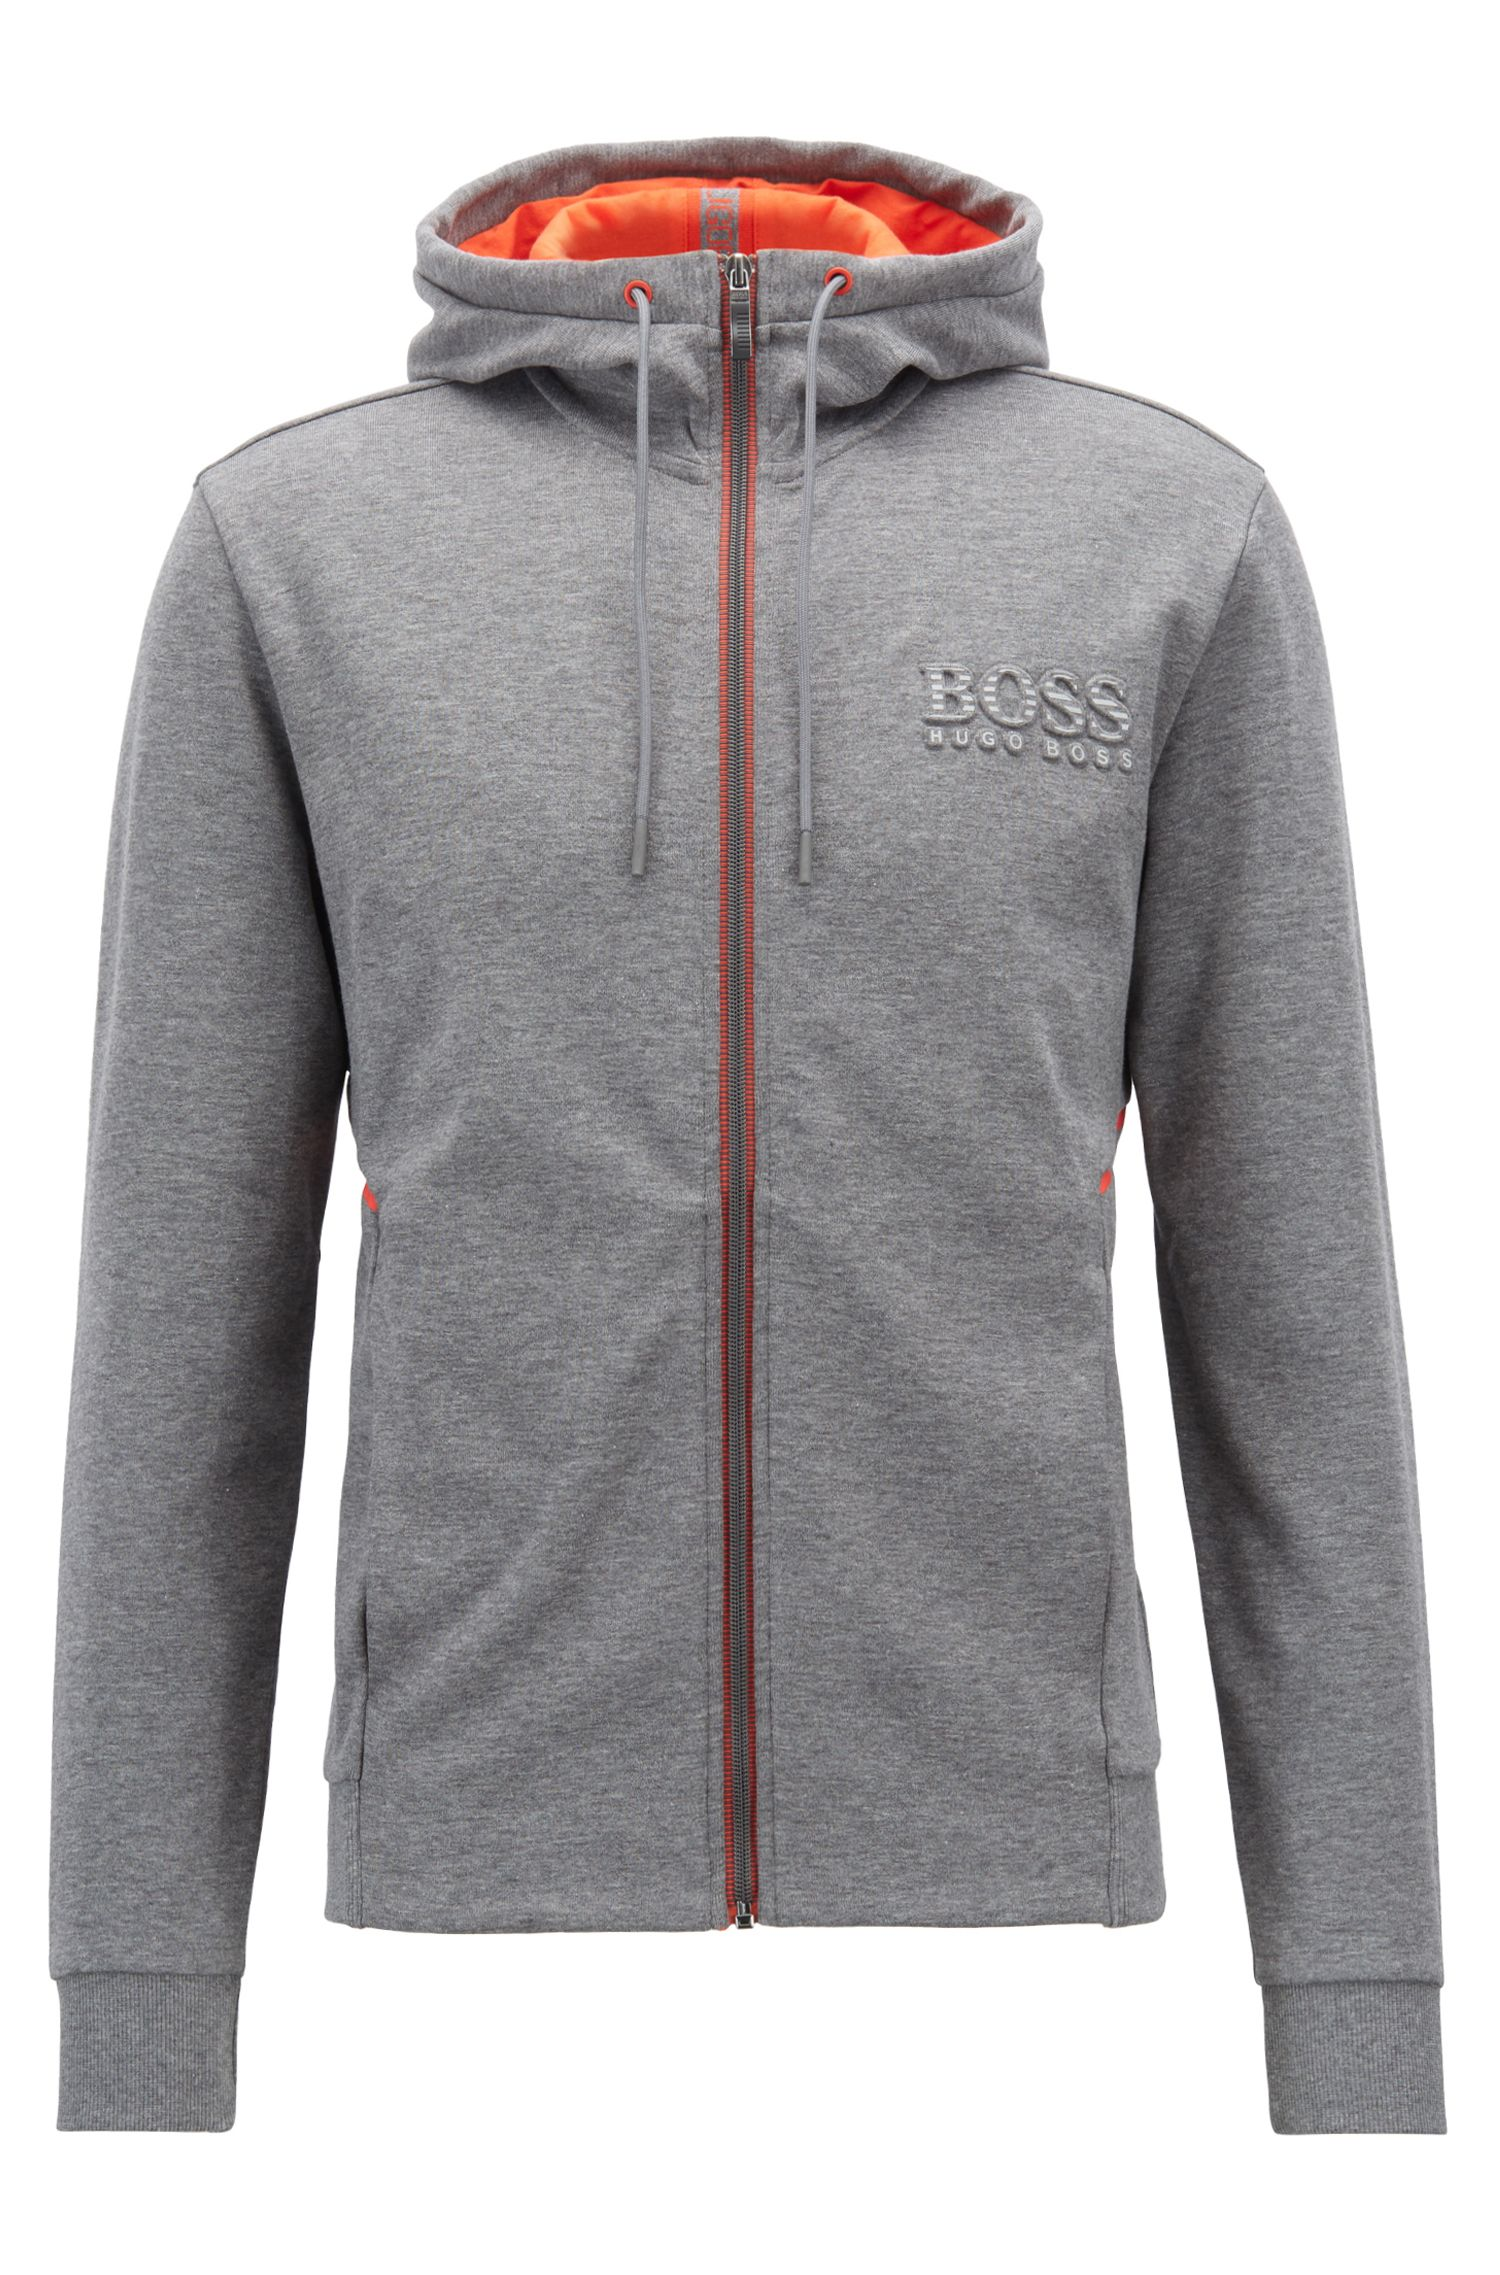 Hooded sweatshirt with logo and reflective detailing, Grey